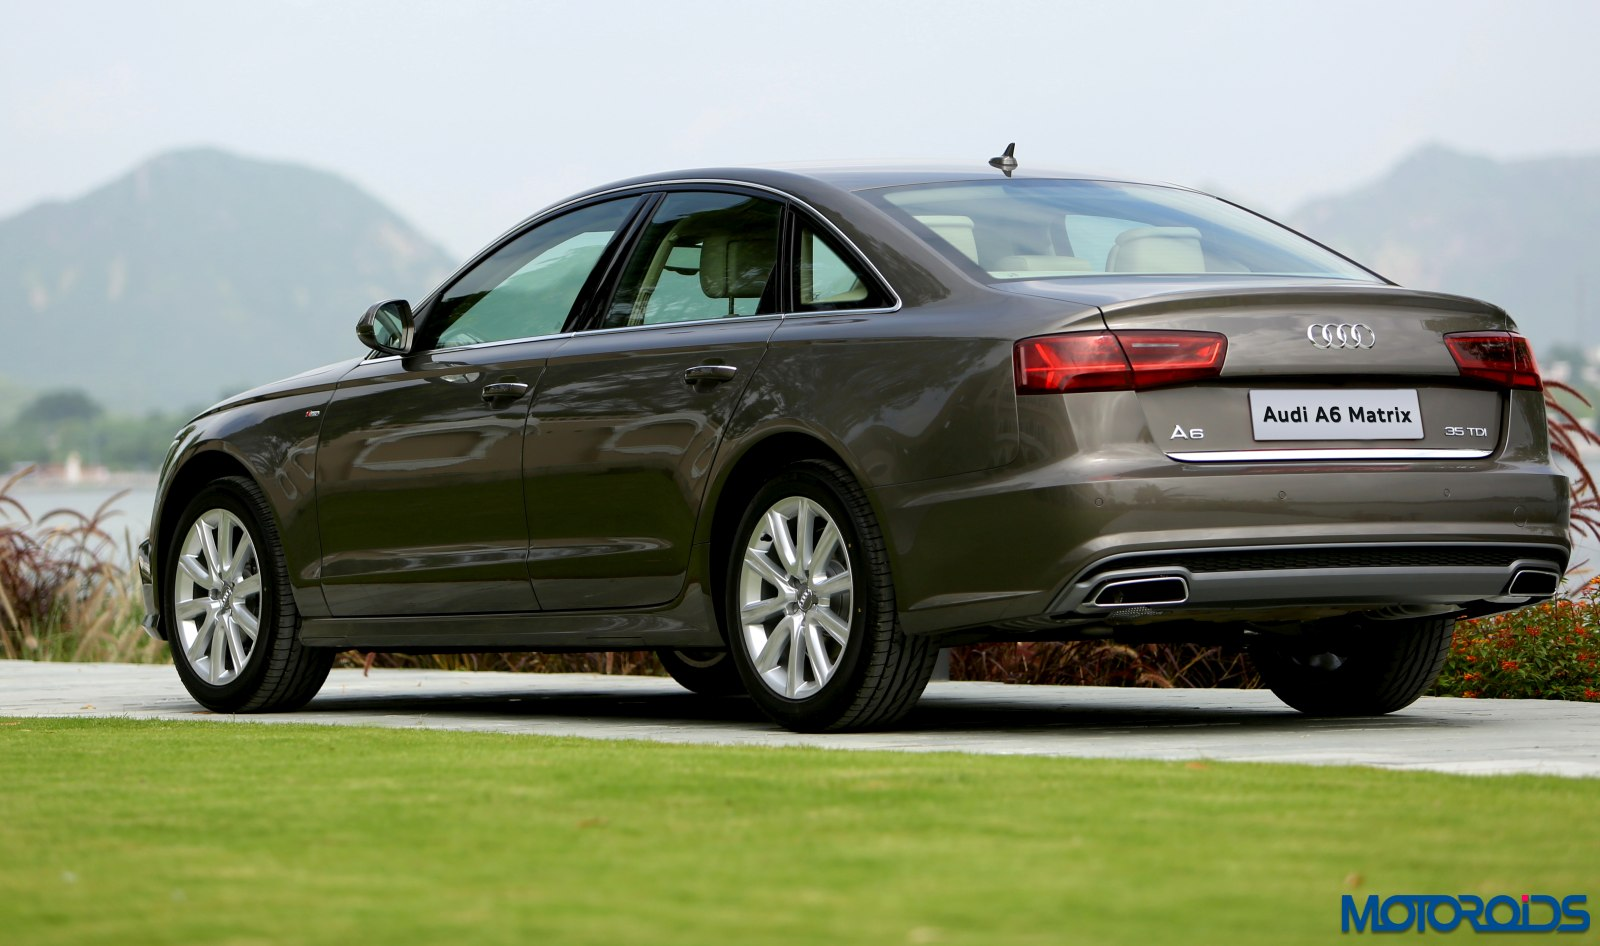 2015 audi a6 matrix facelift india review. Black Bedroom Furniture Sets. Home Design Ideas